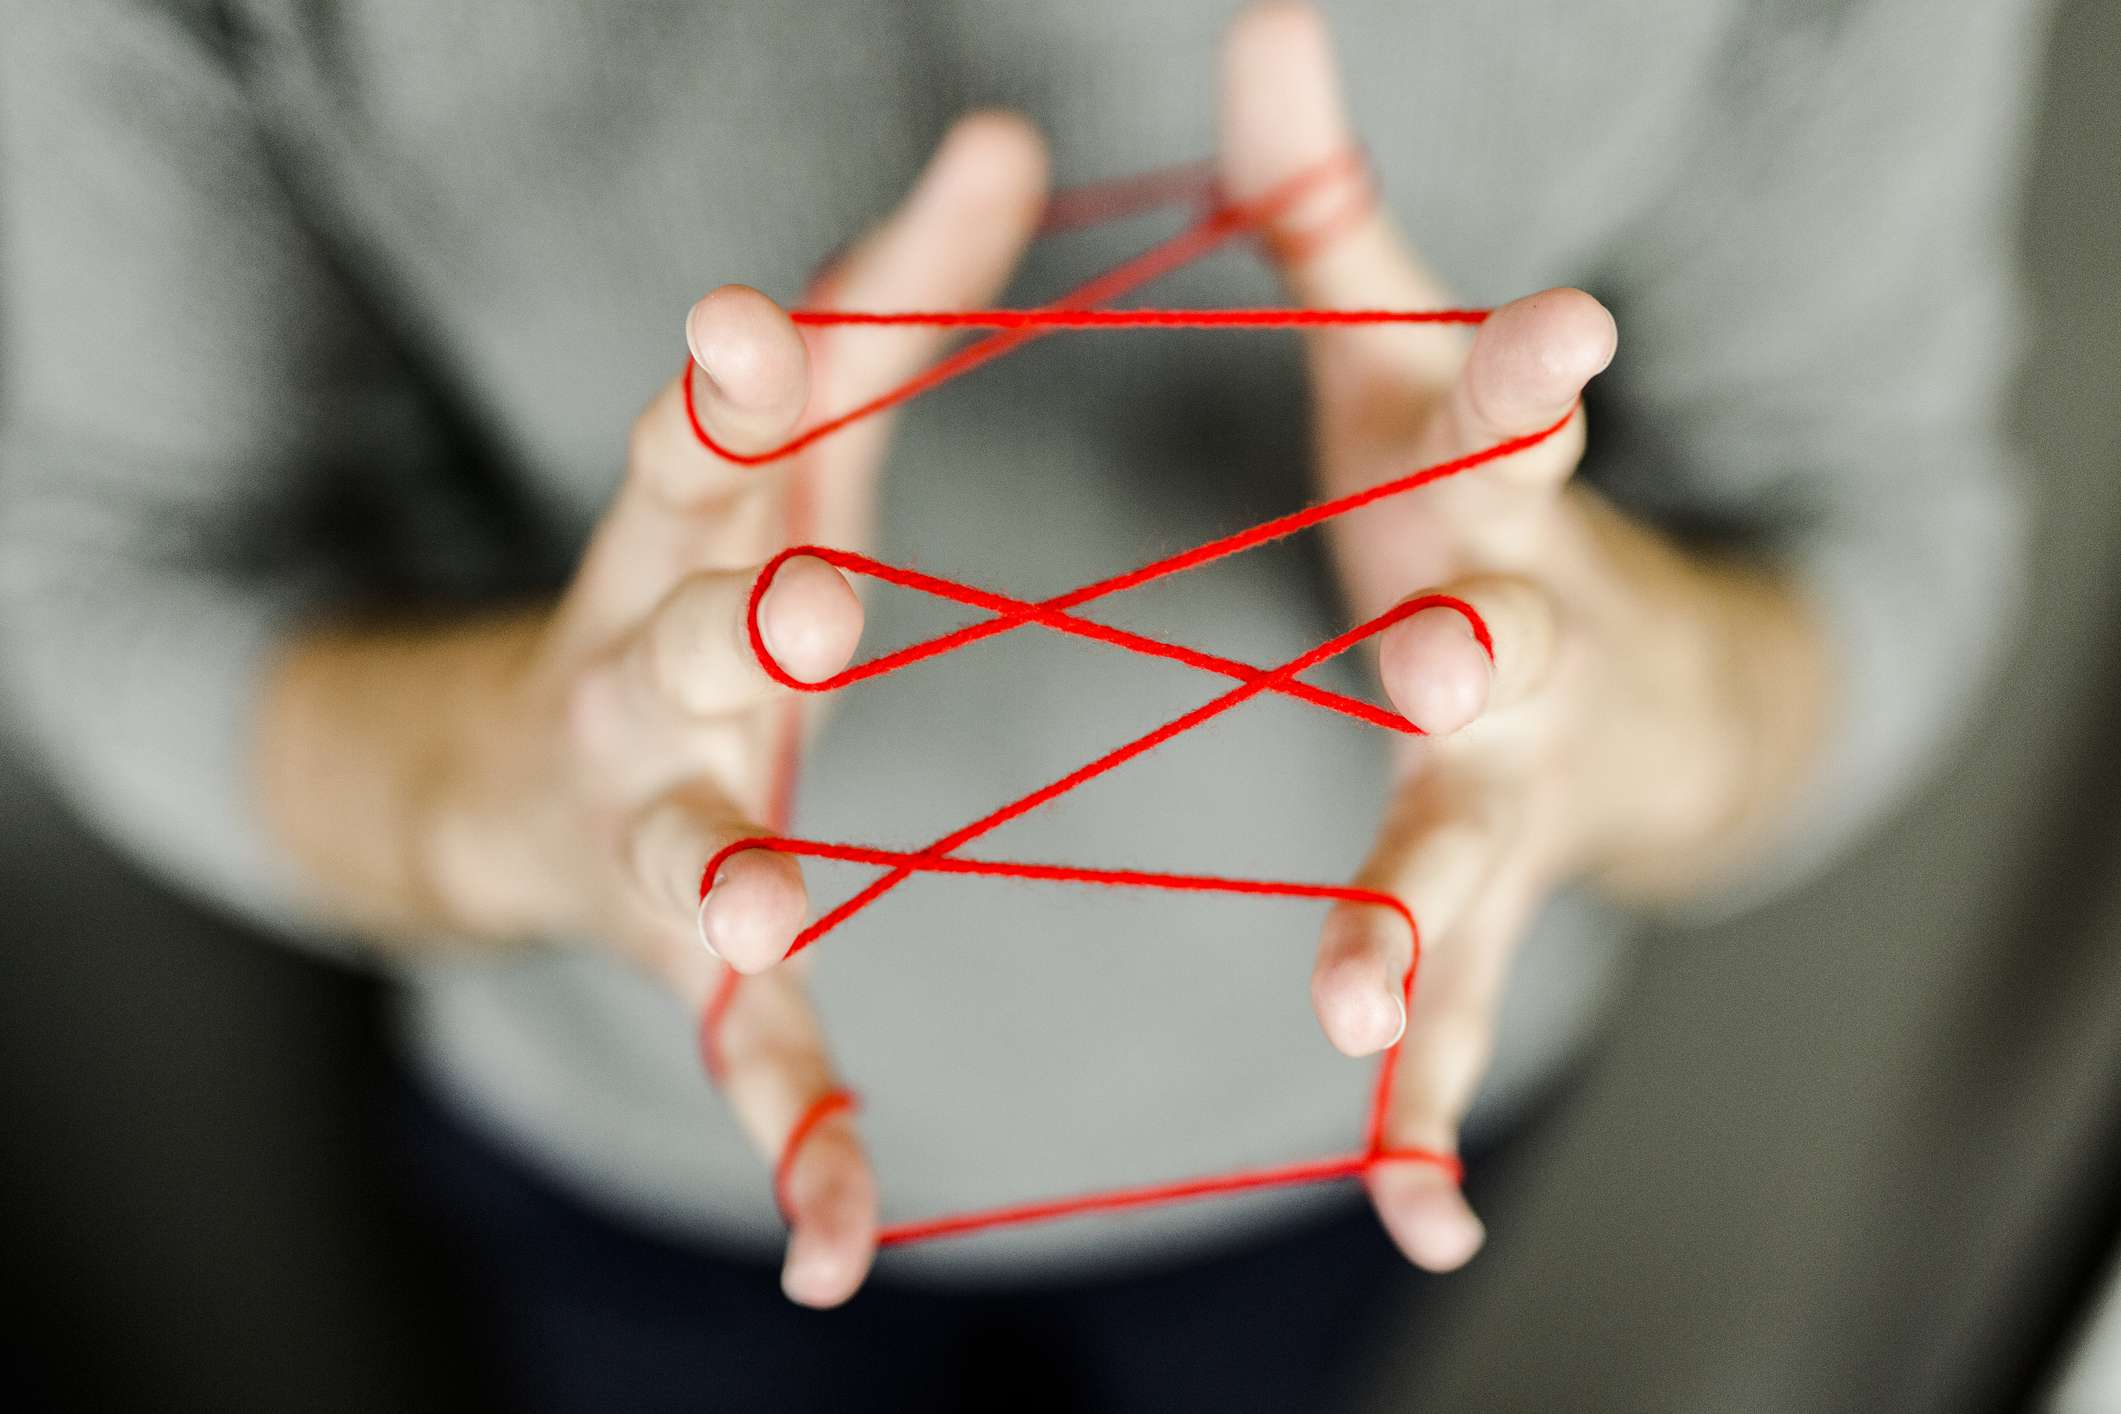 Image of a person holding thread in their fingers.